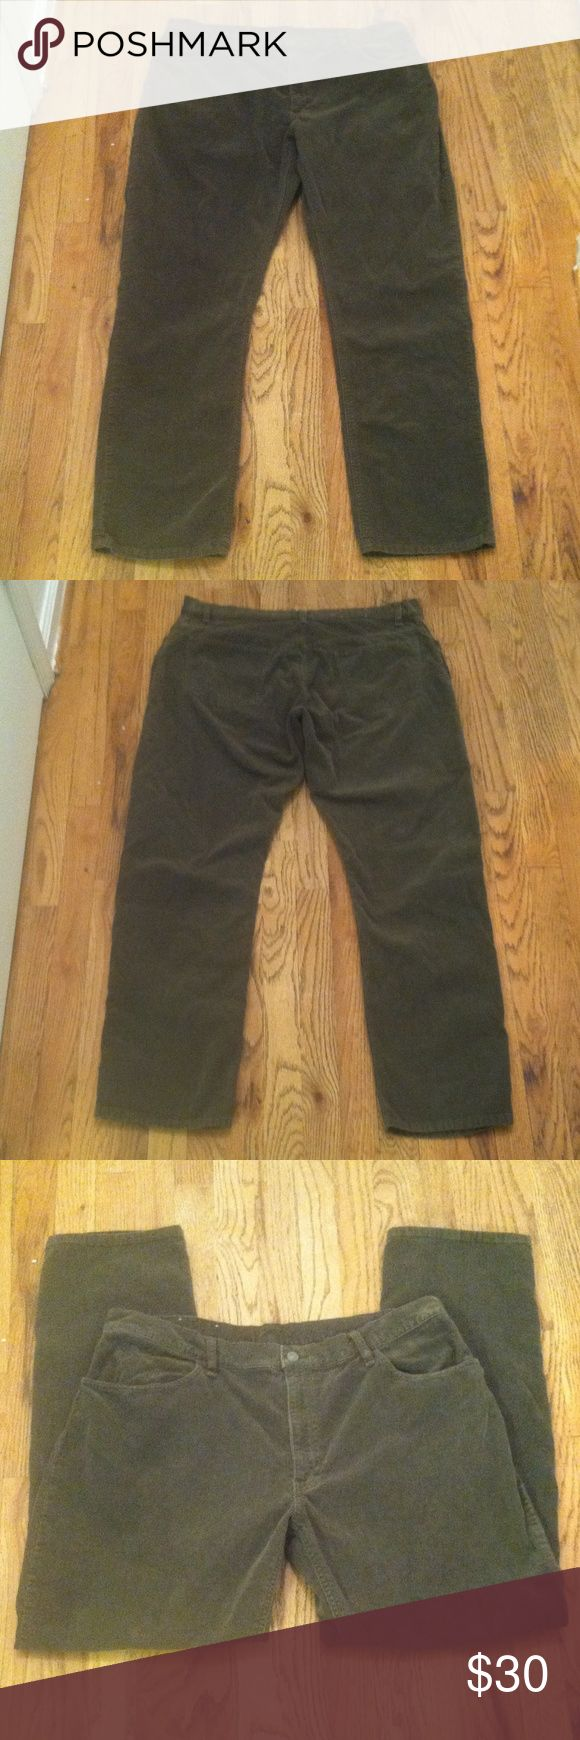 Polo Sport Ralph Lauren Pants 38X32 Polo Sport Ralph Lauren corduroy pants. Size 38X32. Depending on the lighting, sometimes they look green & other times gray. Zip up & one button front closure. Five belt loops. 100% cotton. Made in Malaysia.  NO TRADES, HOLDS, OR MODELING. Polo Sport Ralph Lauren Pants Corduroy